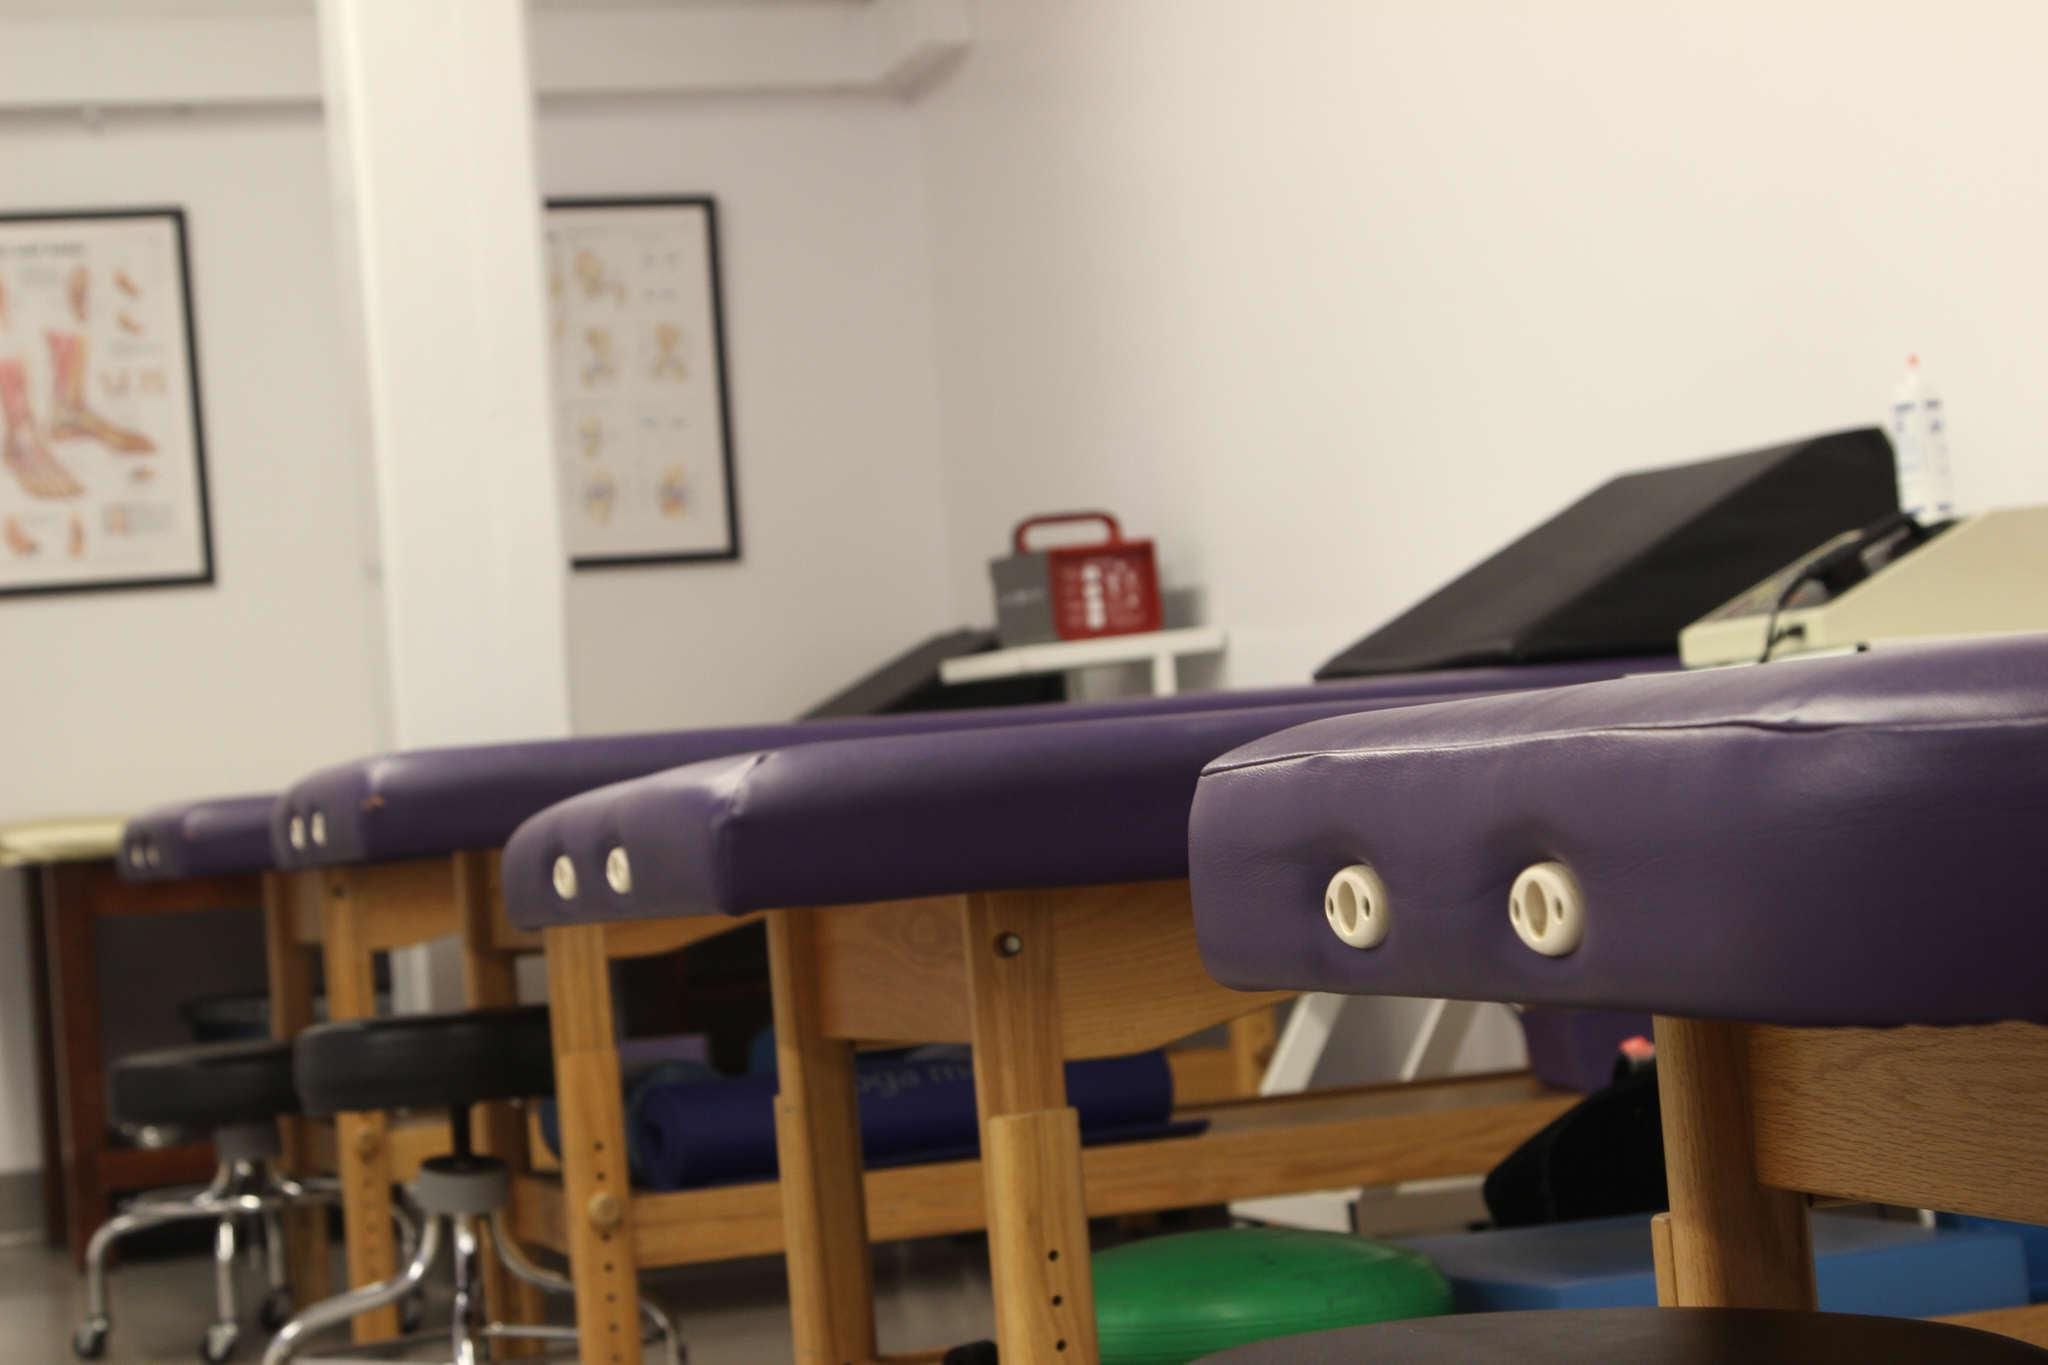 Sports treatment tables sit in the new Sports Medicine room located in the Gymnasium at SF State, Tuesday, Feb. 17.